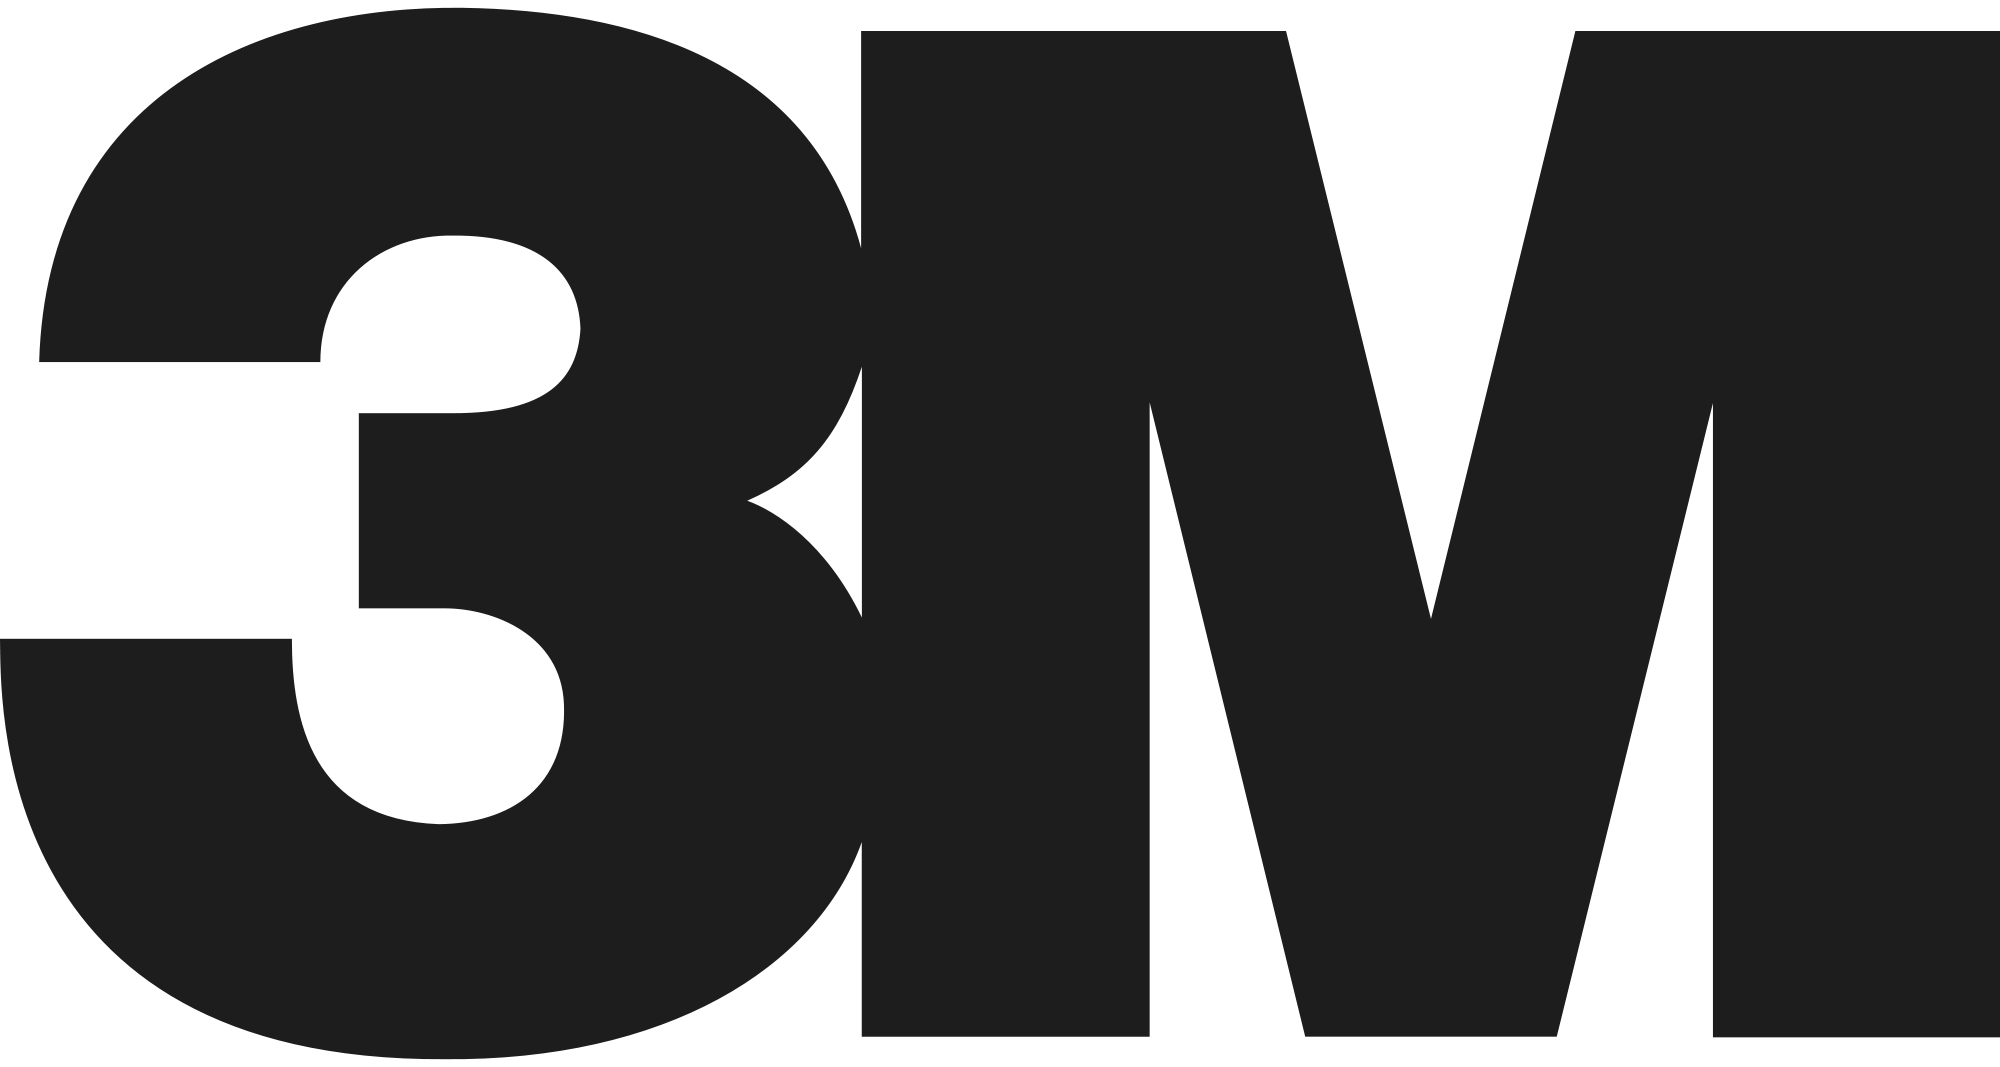 3M logo in black